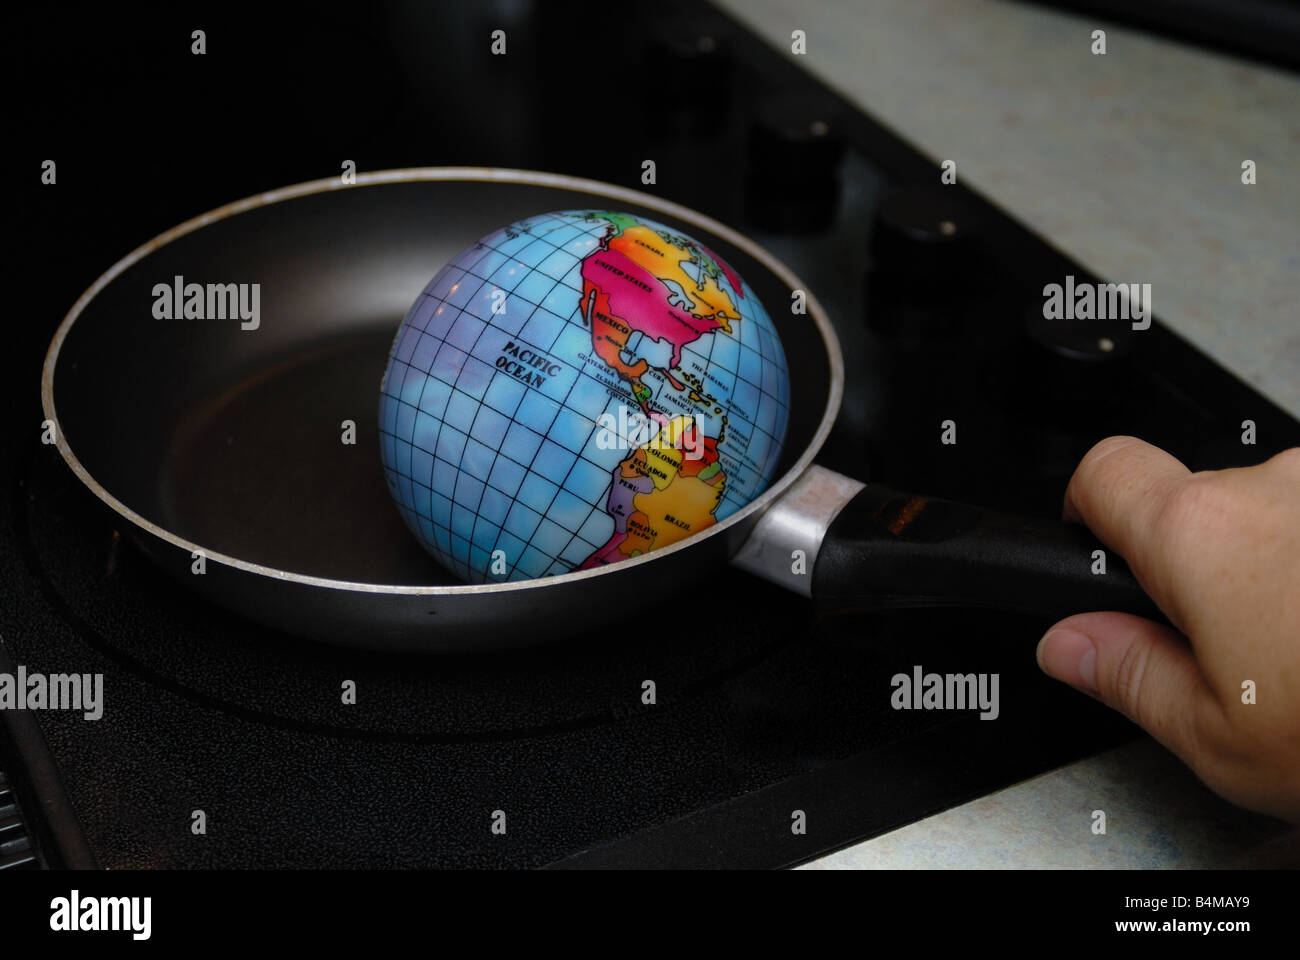 A globe is shown being fried in a skillet on a stove burner representing the concept of Global Warming - Stock Image